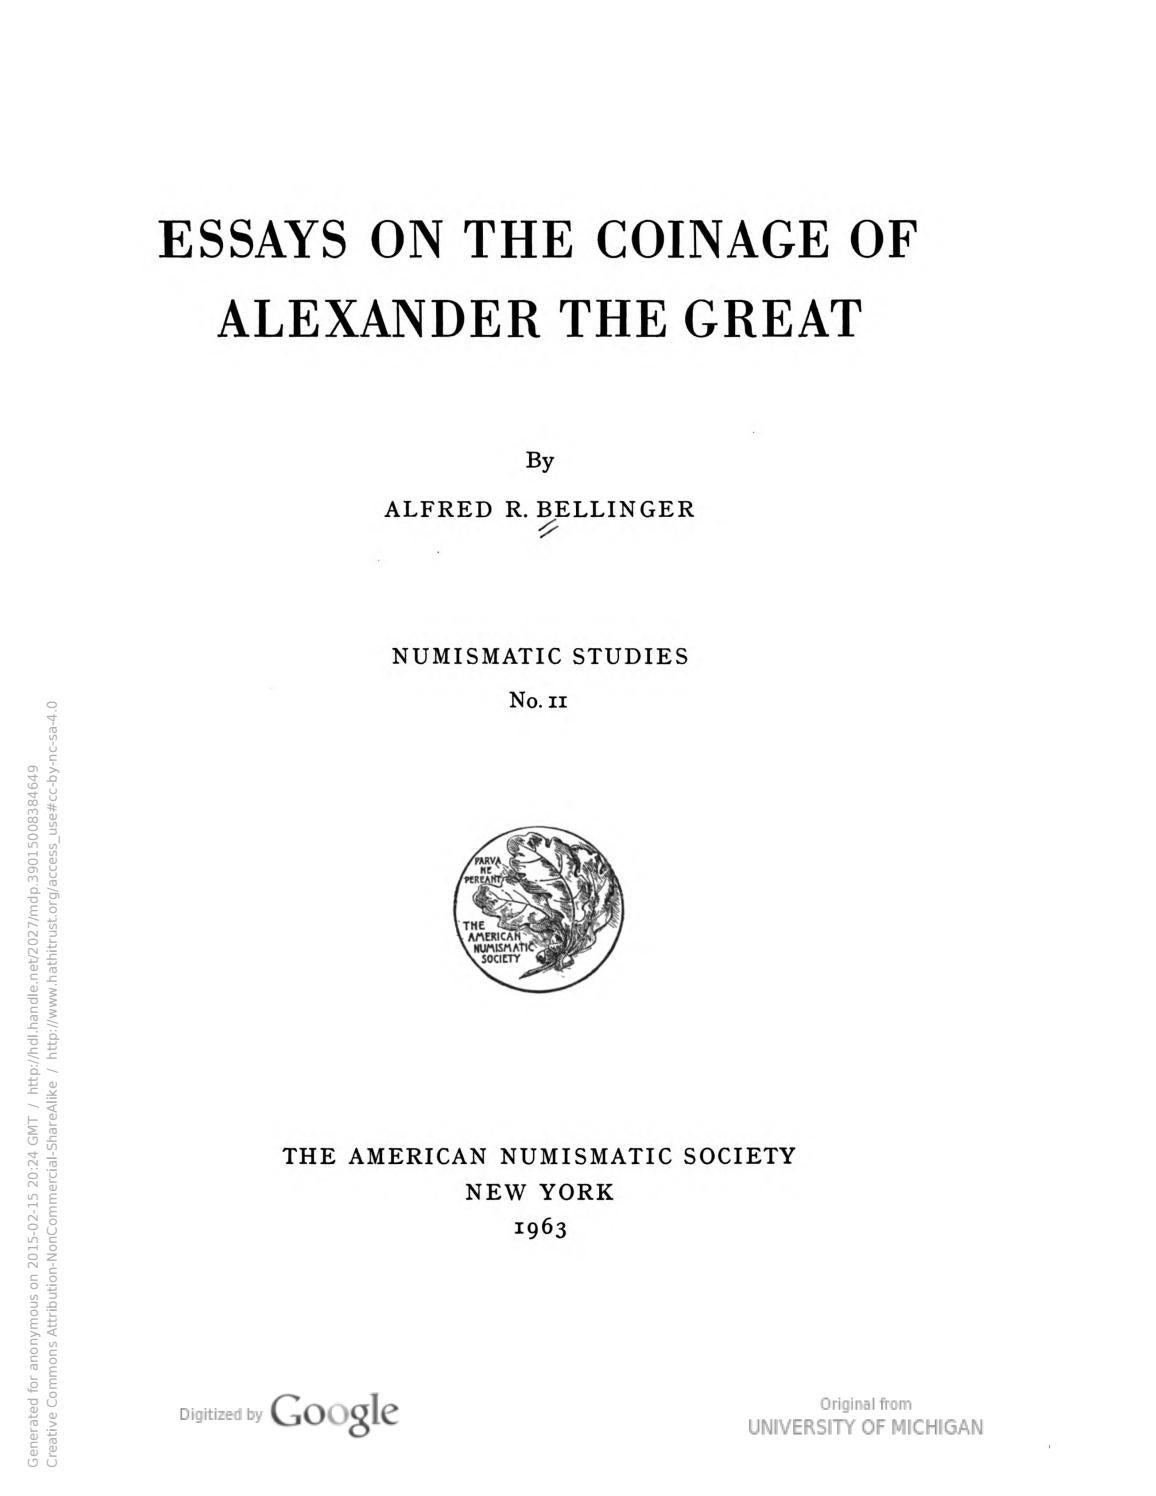 The Dating of the Coinage of Alexander the Great